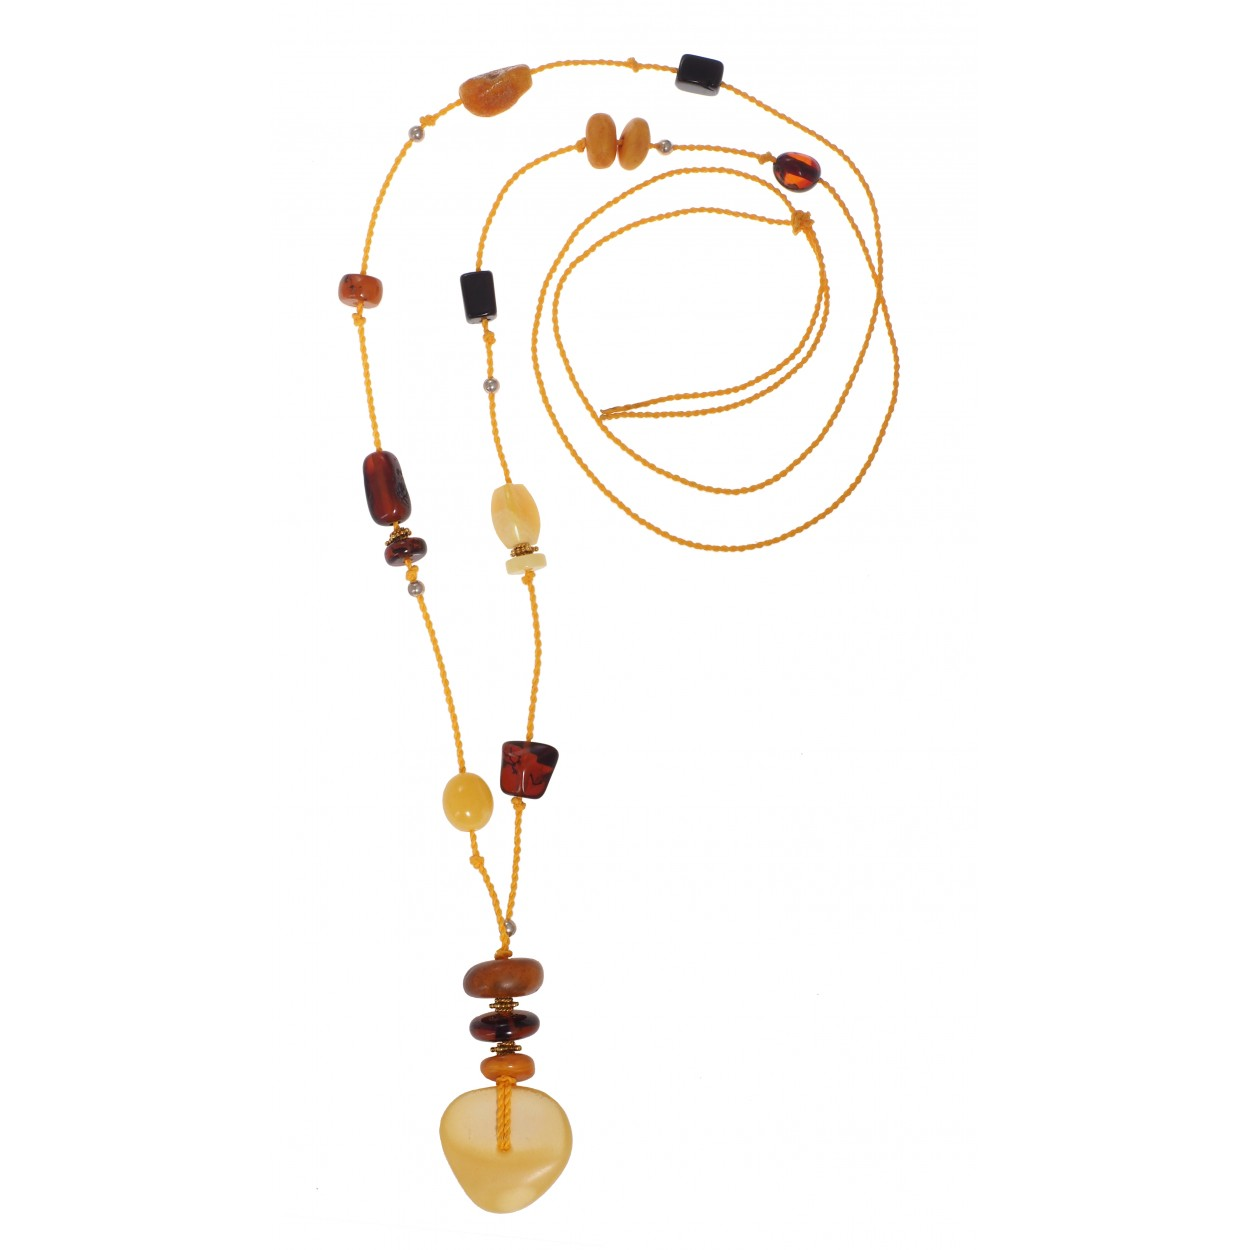 Creativity Amber Necklace